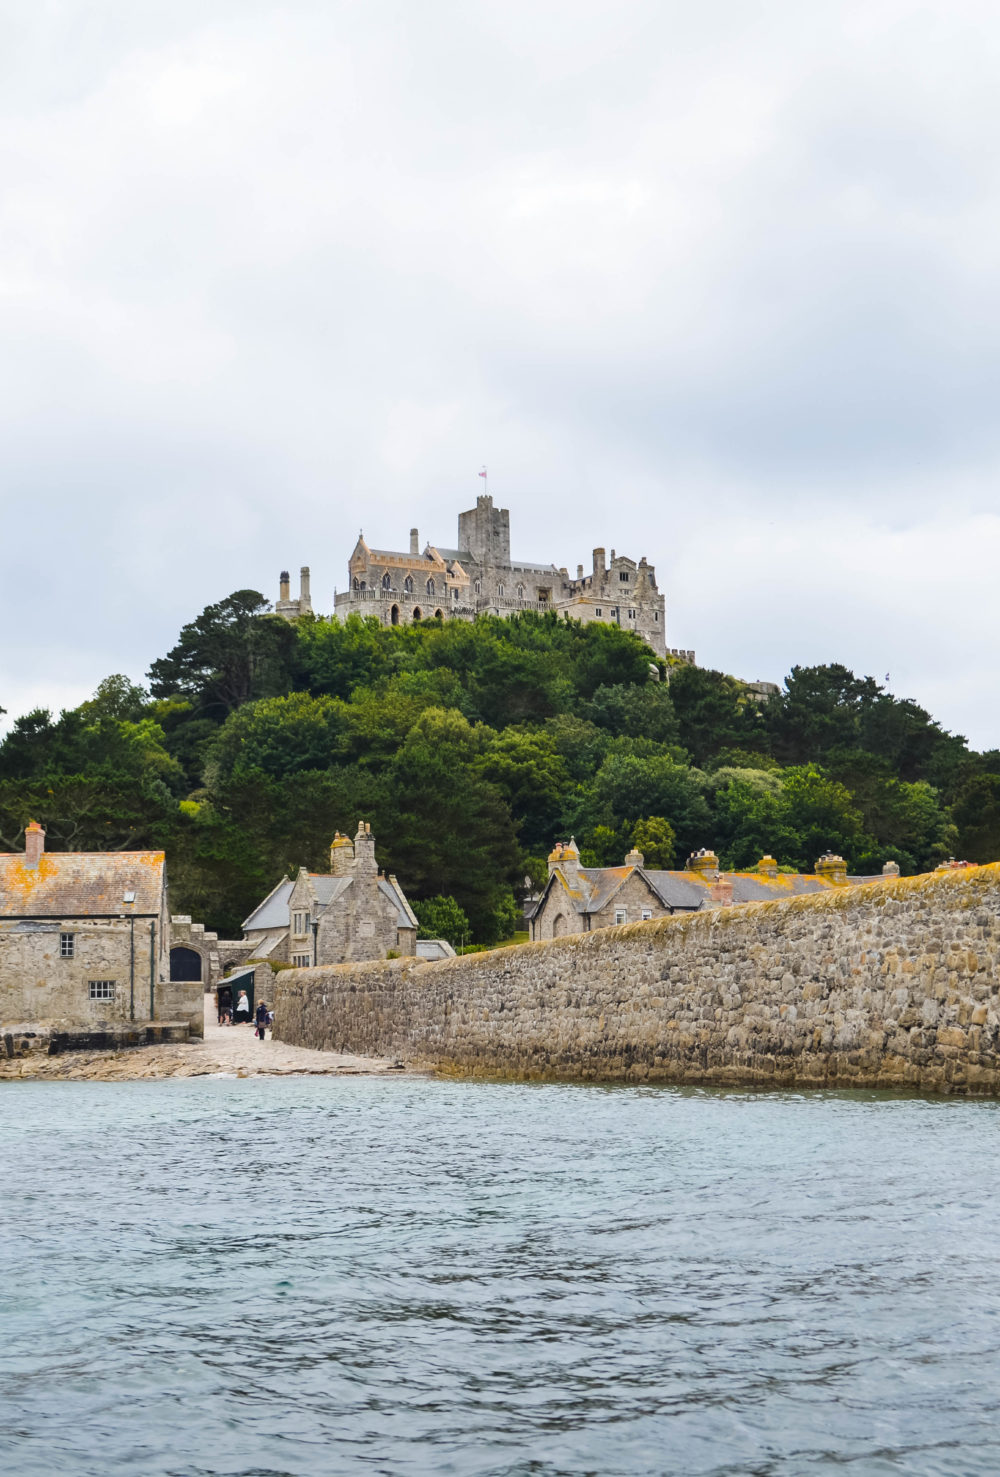 How to Get from Penzance to St Michael's Mount